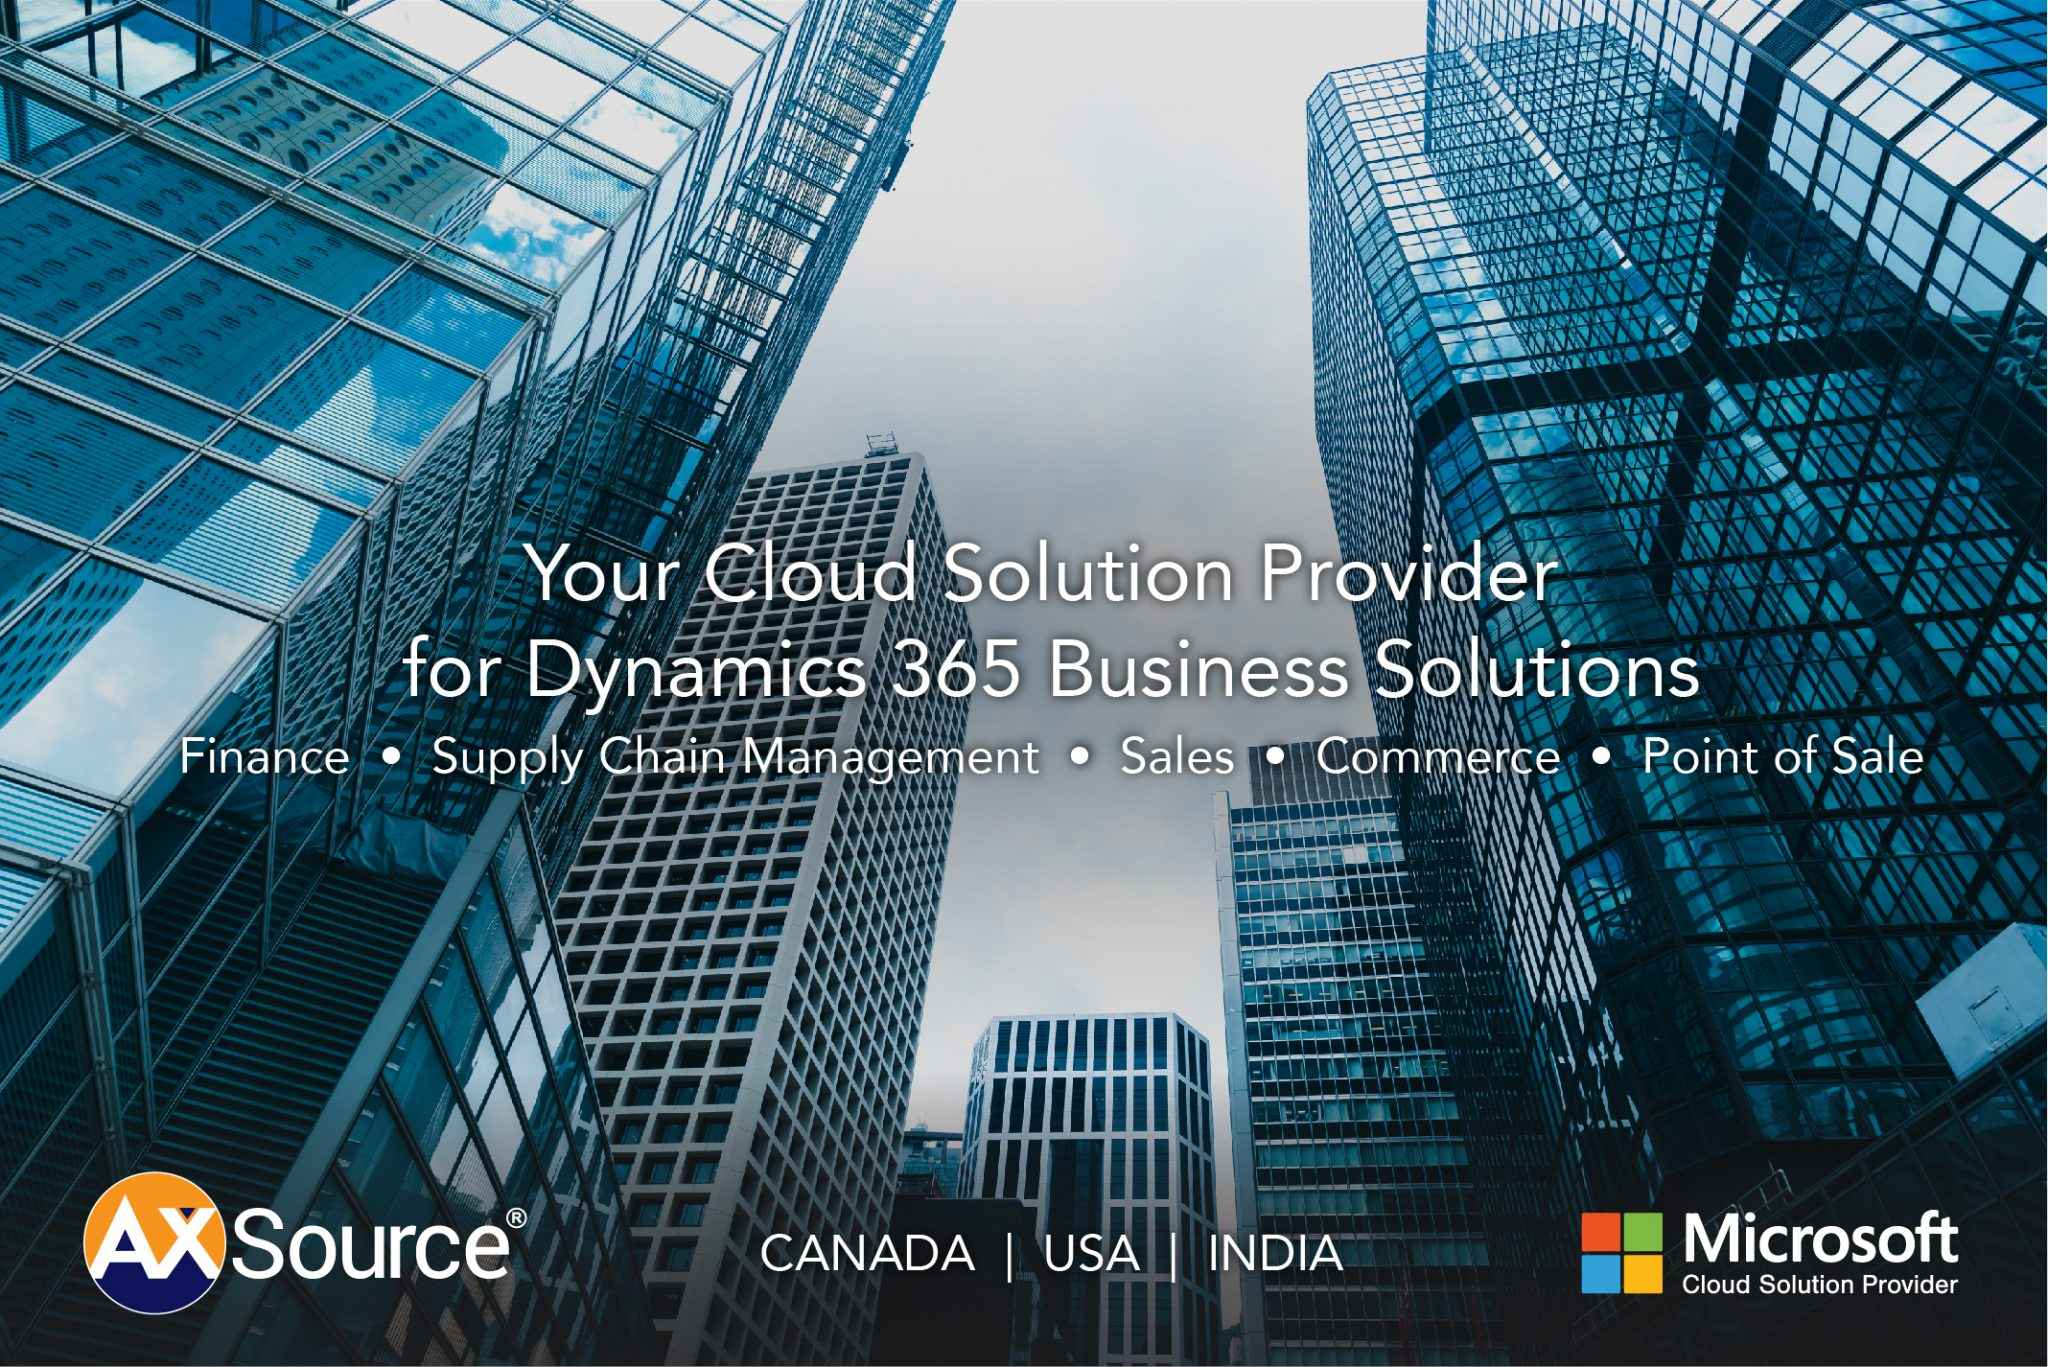 AXSource Becomes Tier One Cloud Solution Provider in United States and India 1